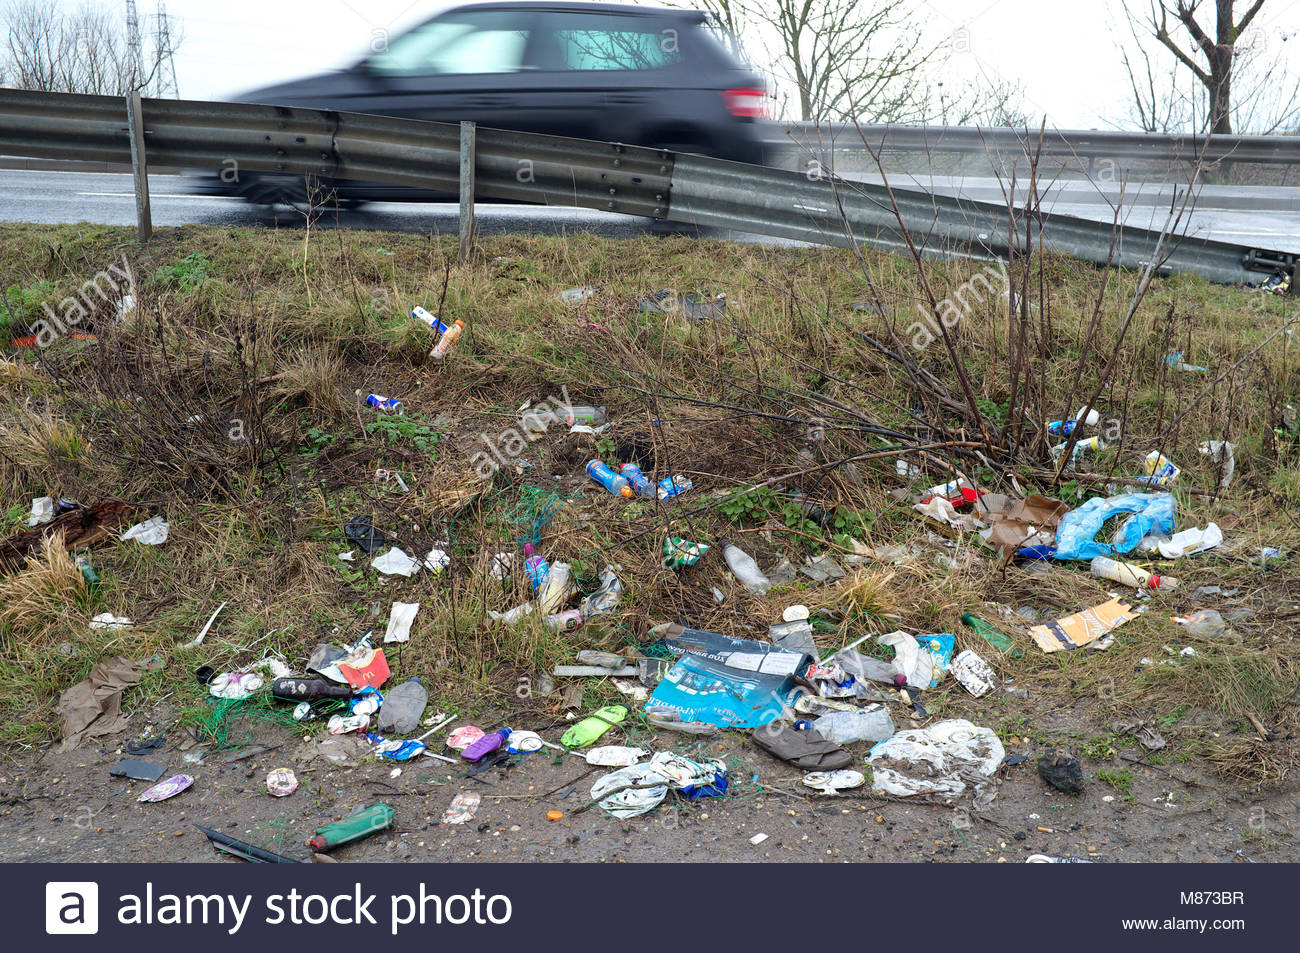 Litter - roadside rubbish discarded on the grass verge. Isle of Sheppey, Kent, UK. Stock Photo